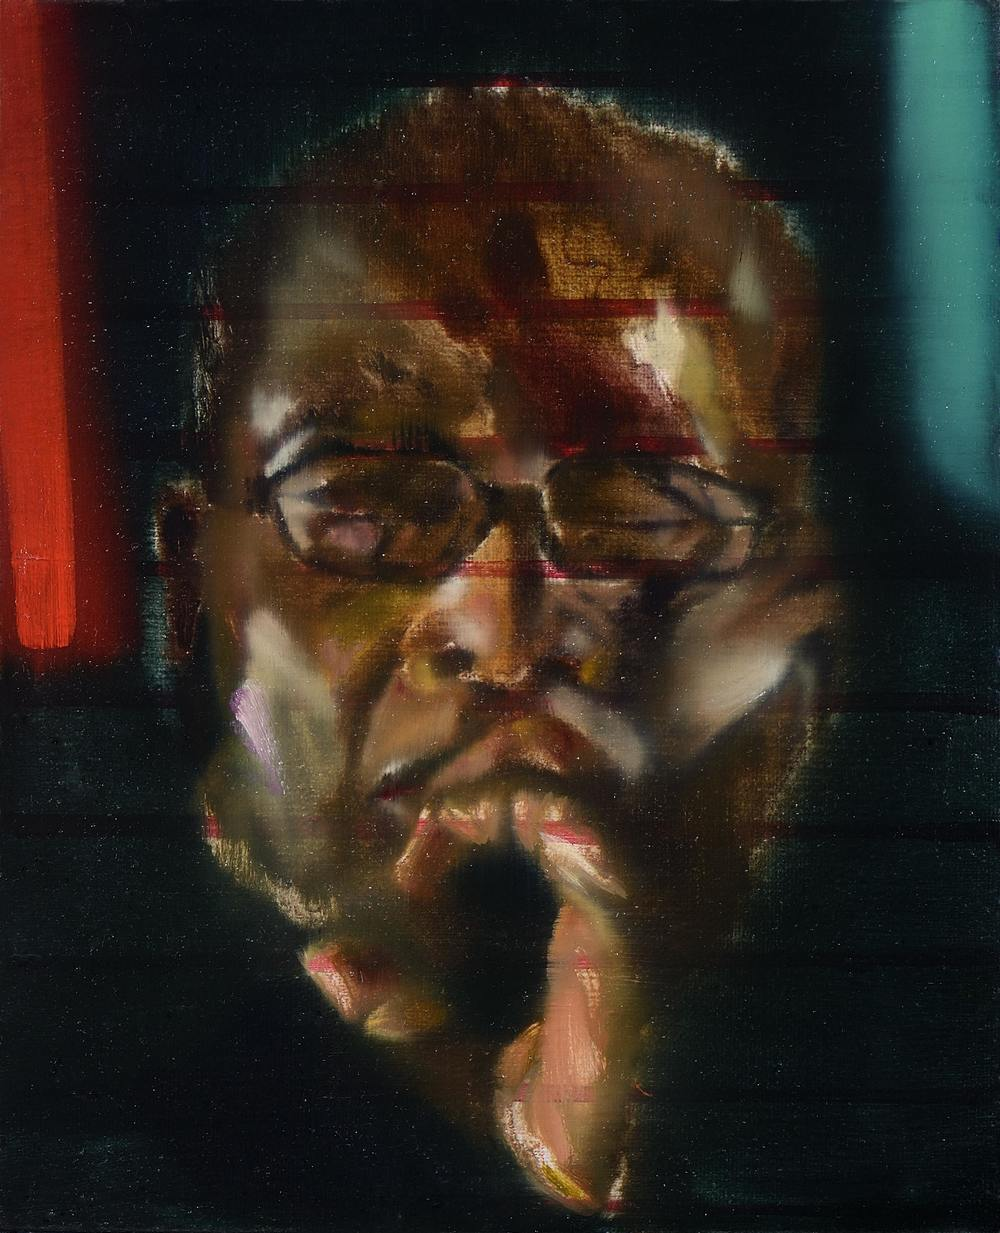 Petit Mugabe 1 , 2012, oil on canvas, 27 x 22cm. Private collection, France